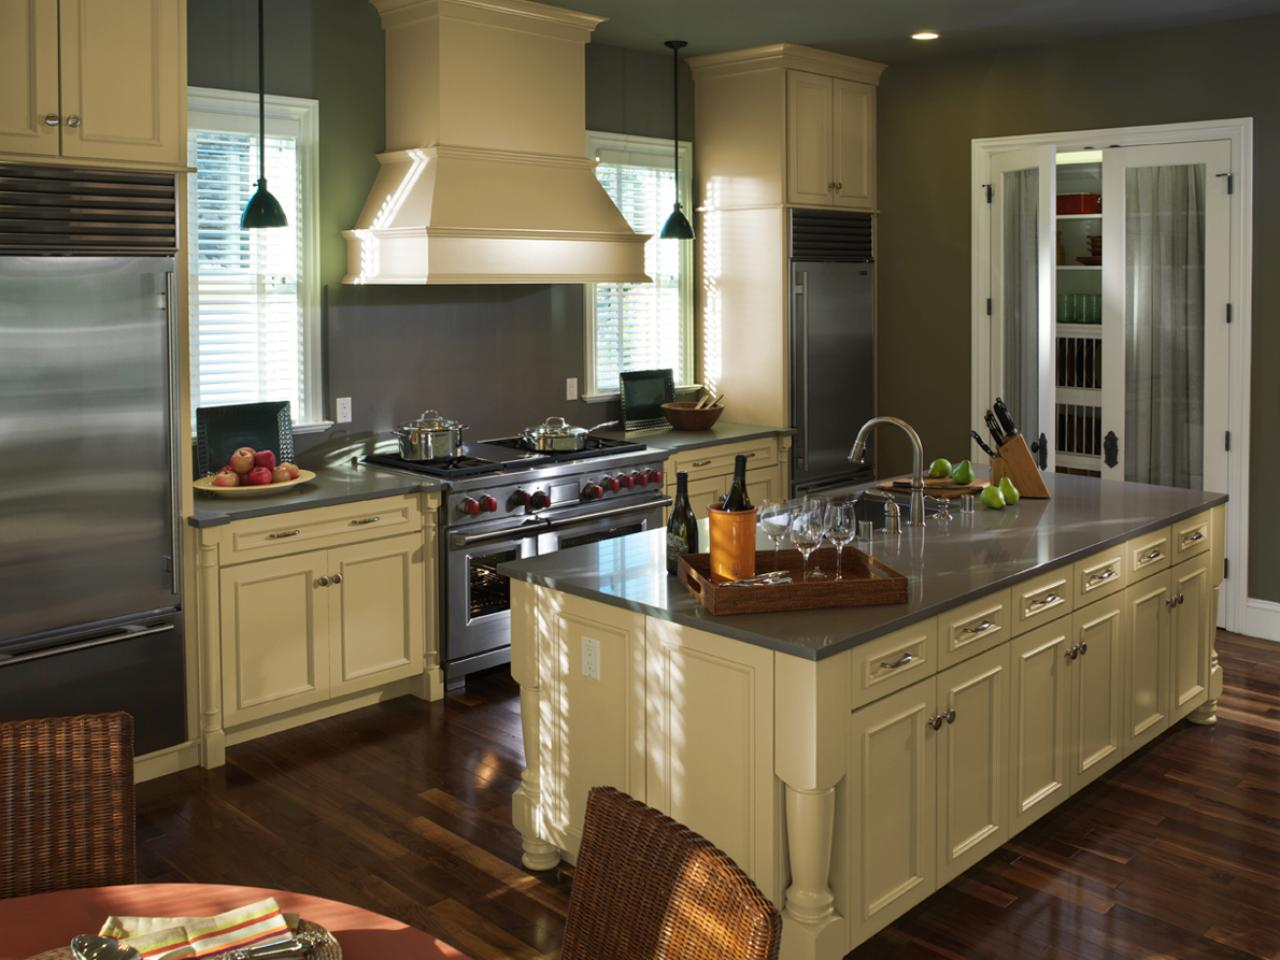 Repainting kitchen cabinets pictures options tips Pictures of painted cabinets